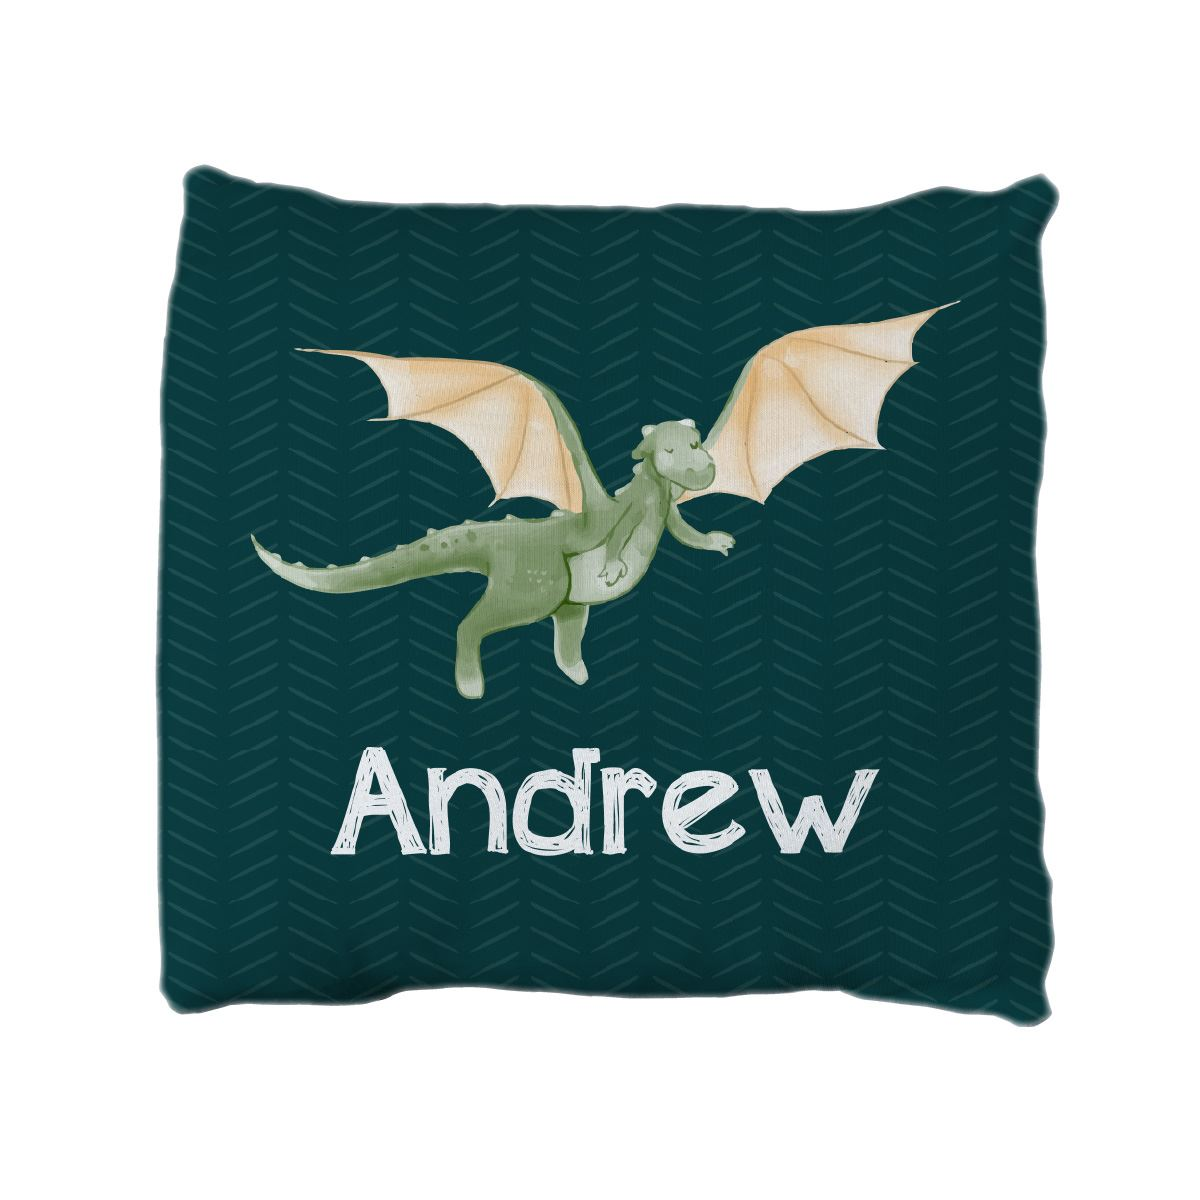 Andrew's Castle and Dragons | Big Kid Throw Pillow